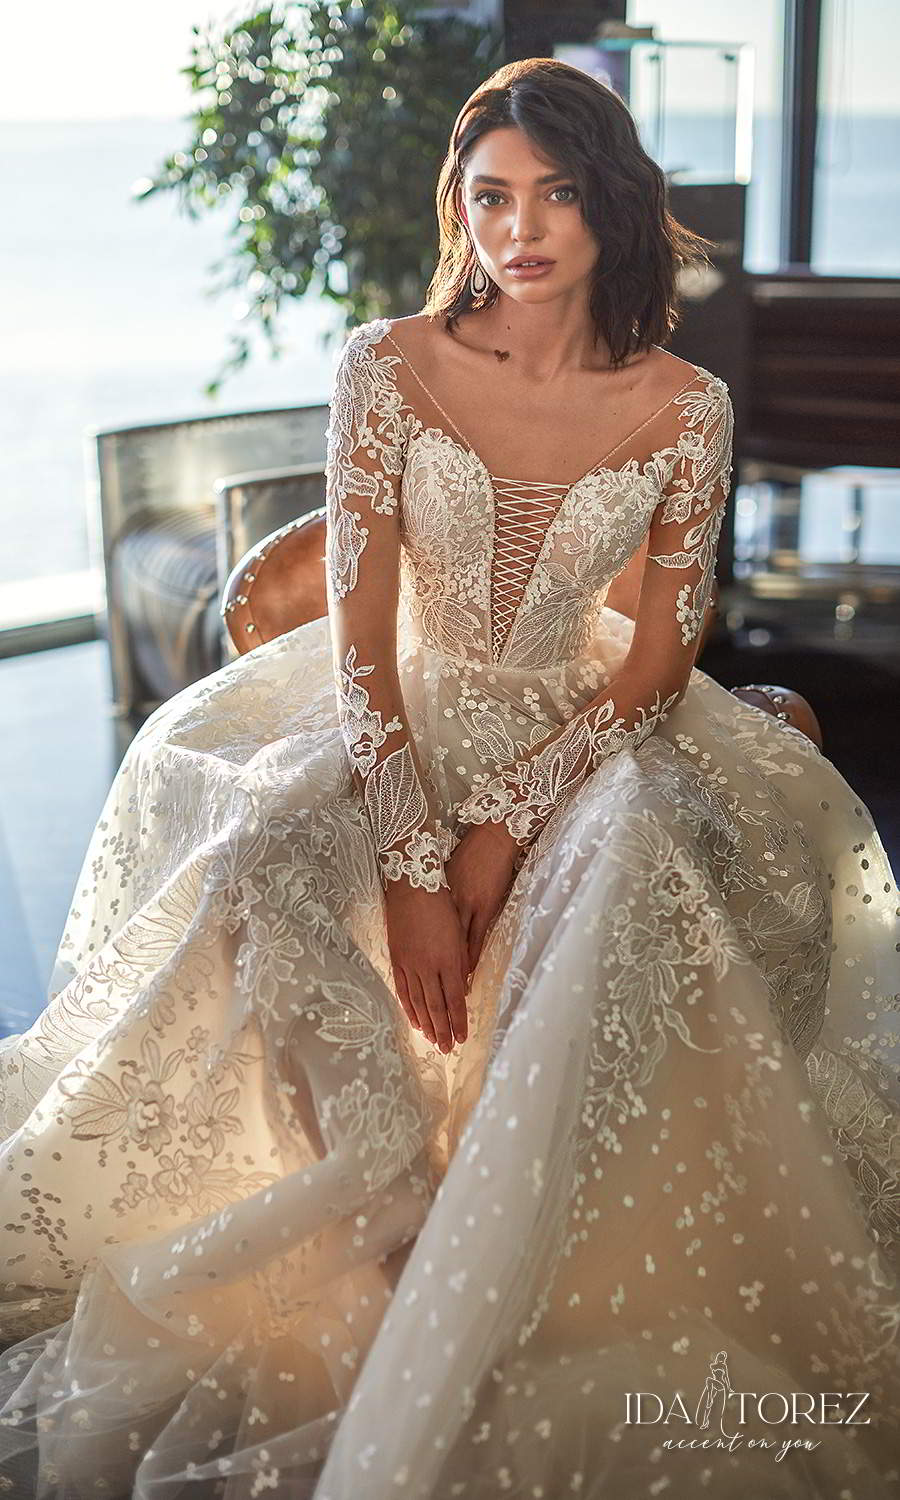 ida torez 2021 bridal long sleeve plunging v neckline fully embellished lace a line ball gown wedding dress chapel train (ideal woman) zv